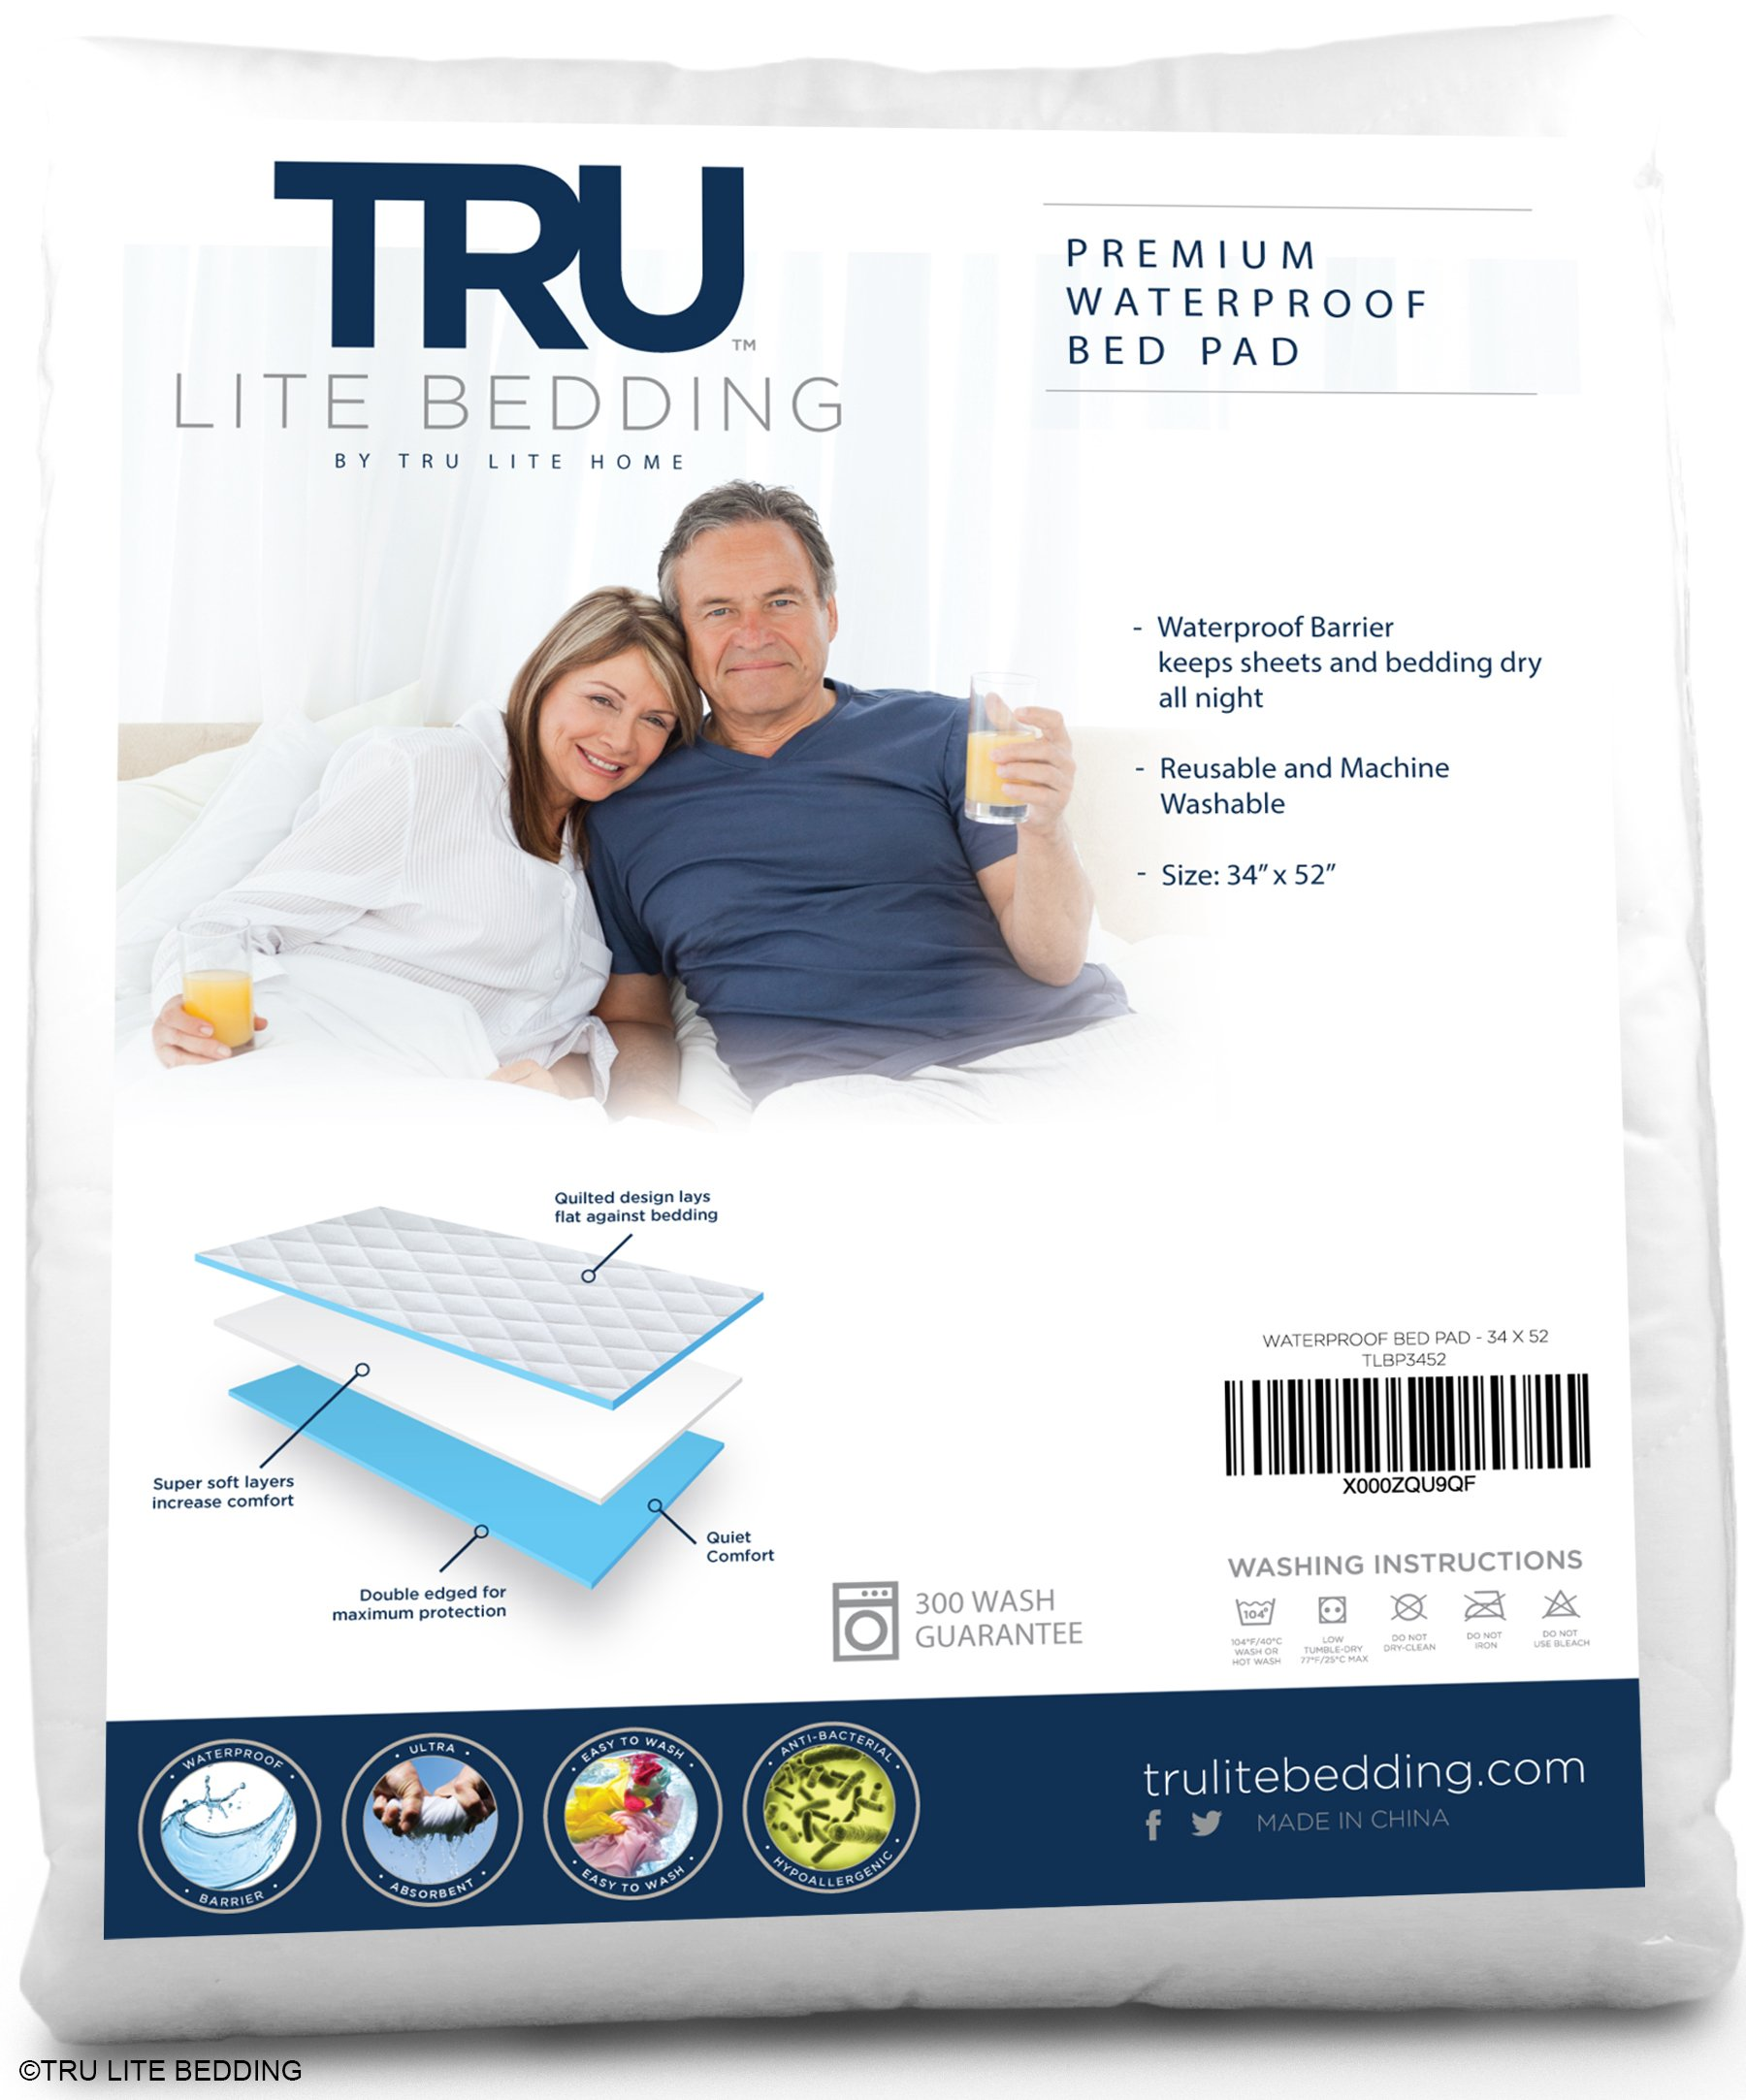 TRU Lite Bedding Reusable Incontinence Pad - Washable, Waterproof Mattress Protector - Bedding and Sheet Protection - Underpad for Bed Wetting and Spills - 52'' x 34''